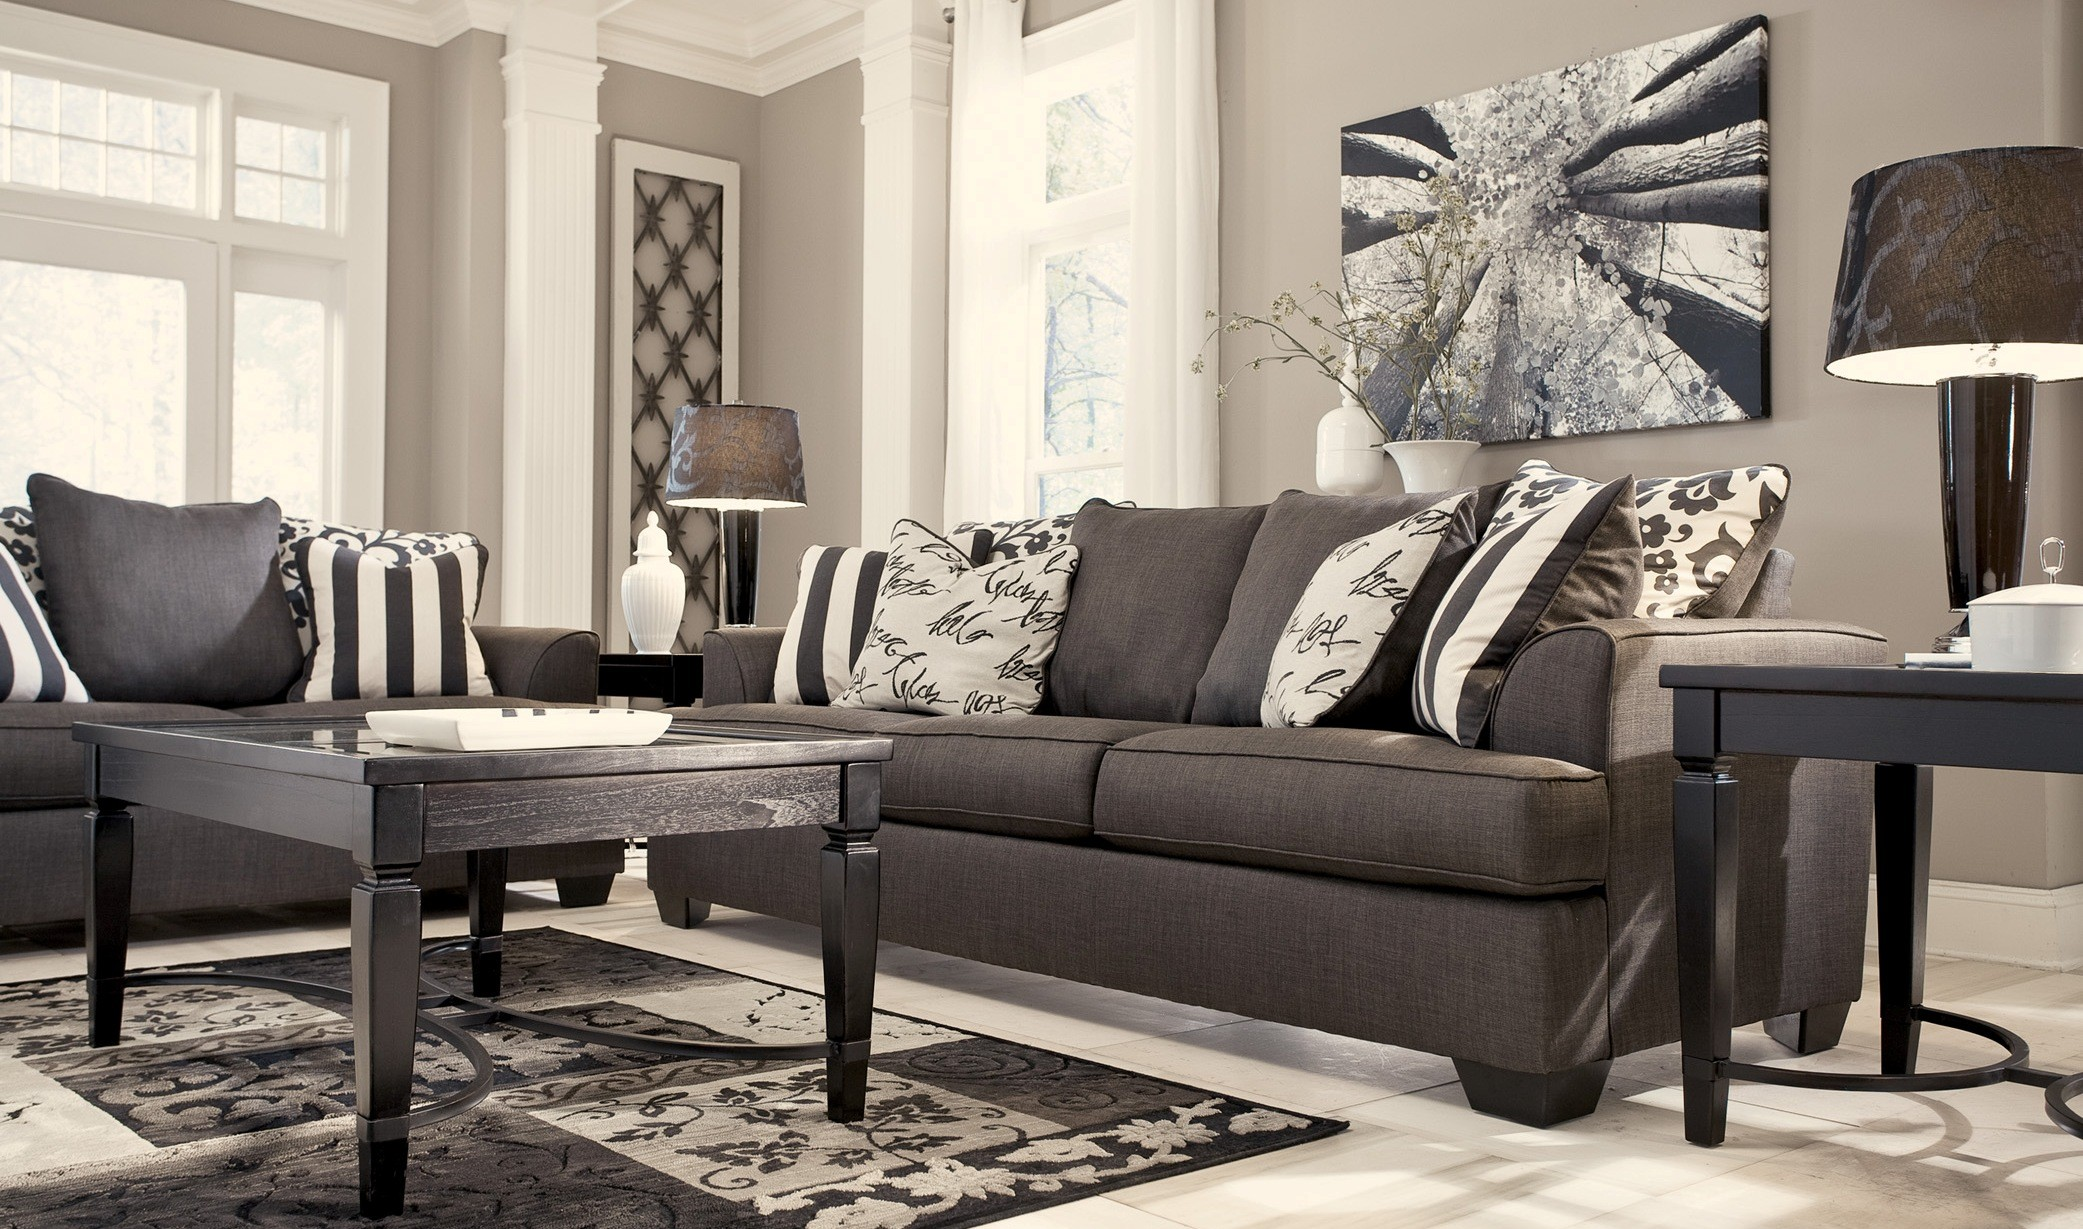 Levon charcoal living room set for Charcoal sofa living room